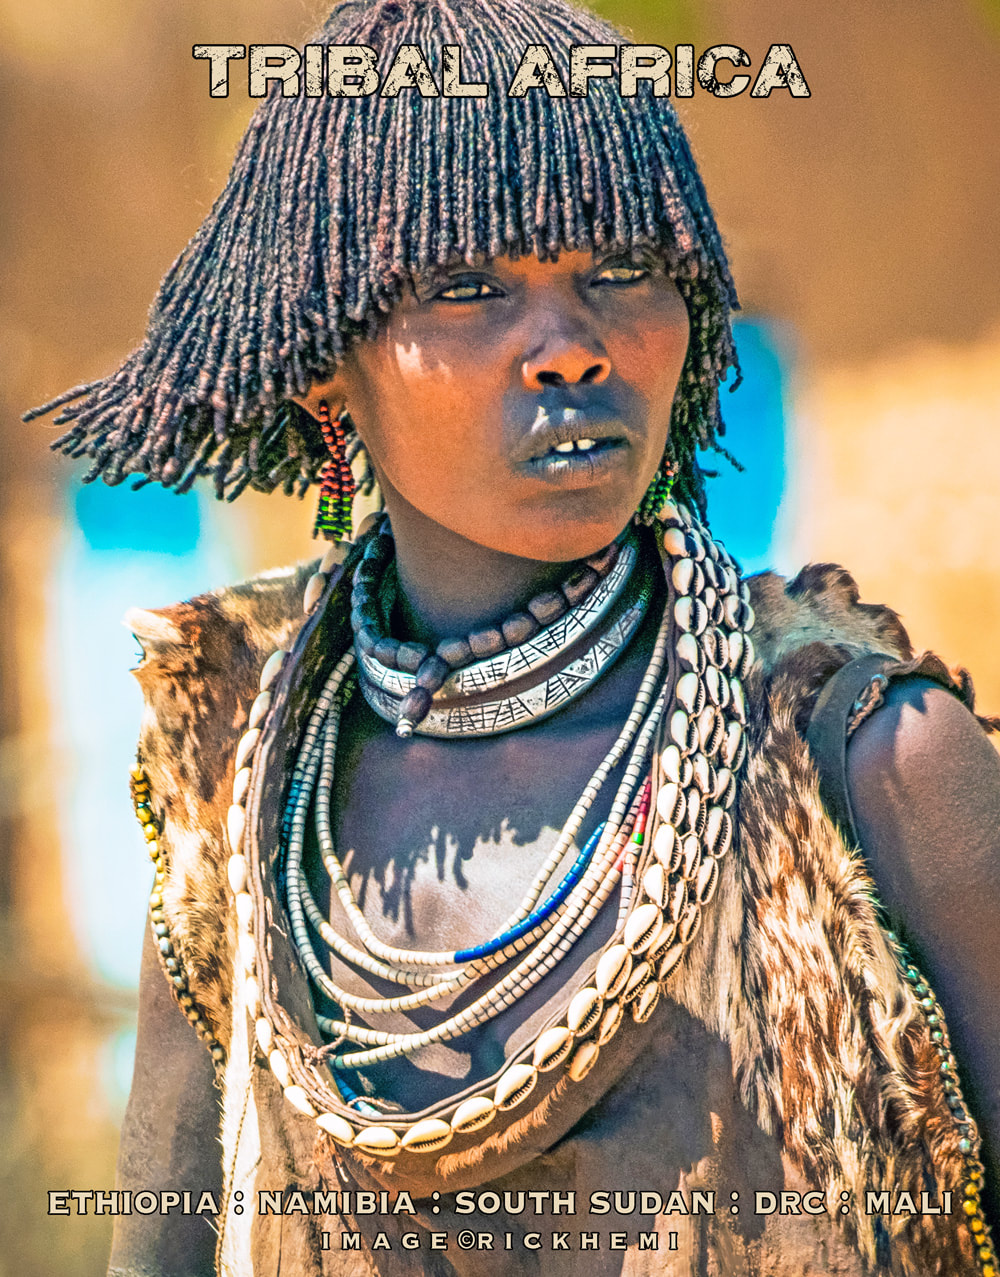 Africa solo travel, tribal lands image by Rick Hemi